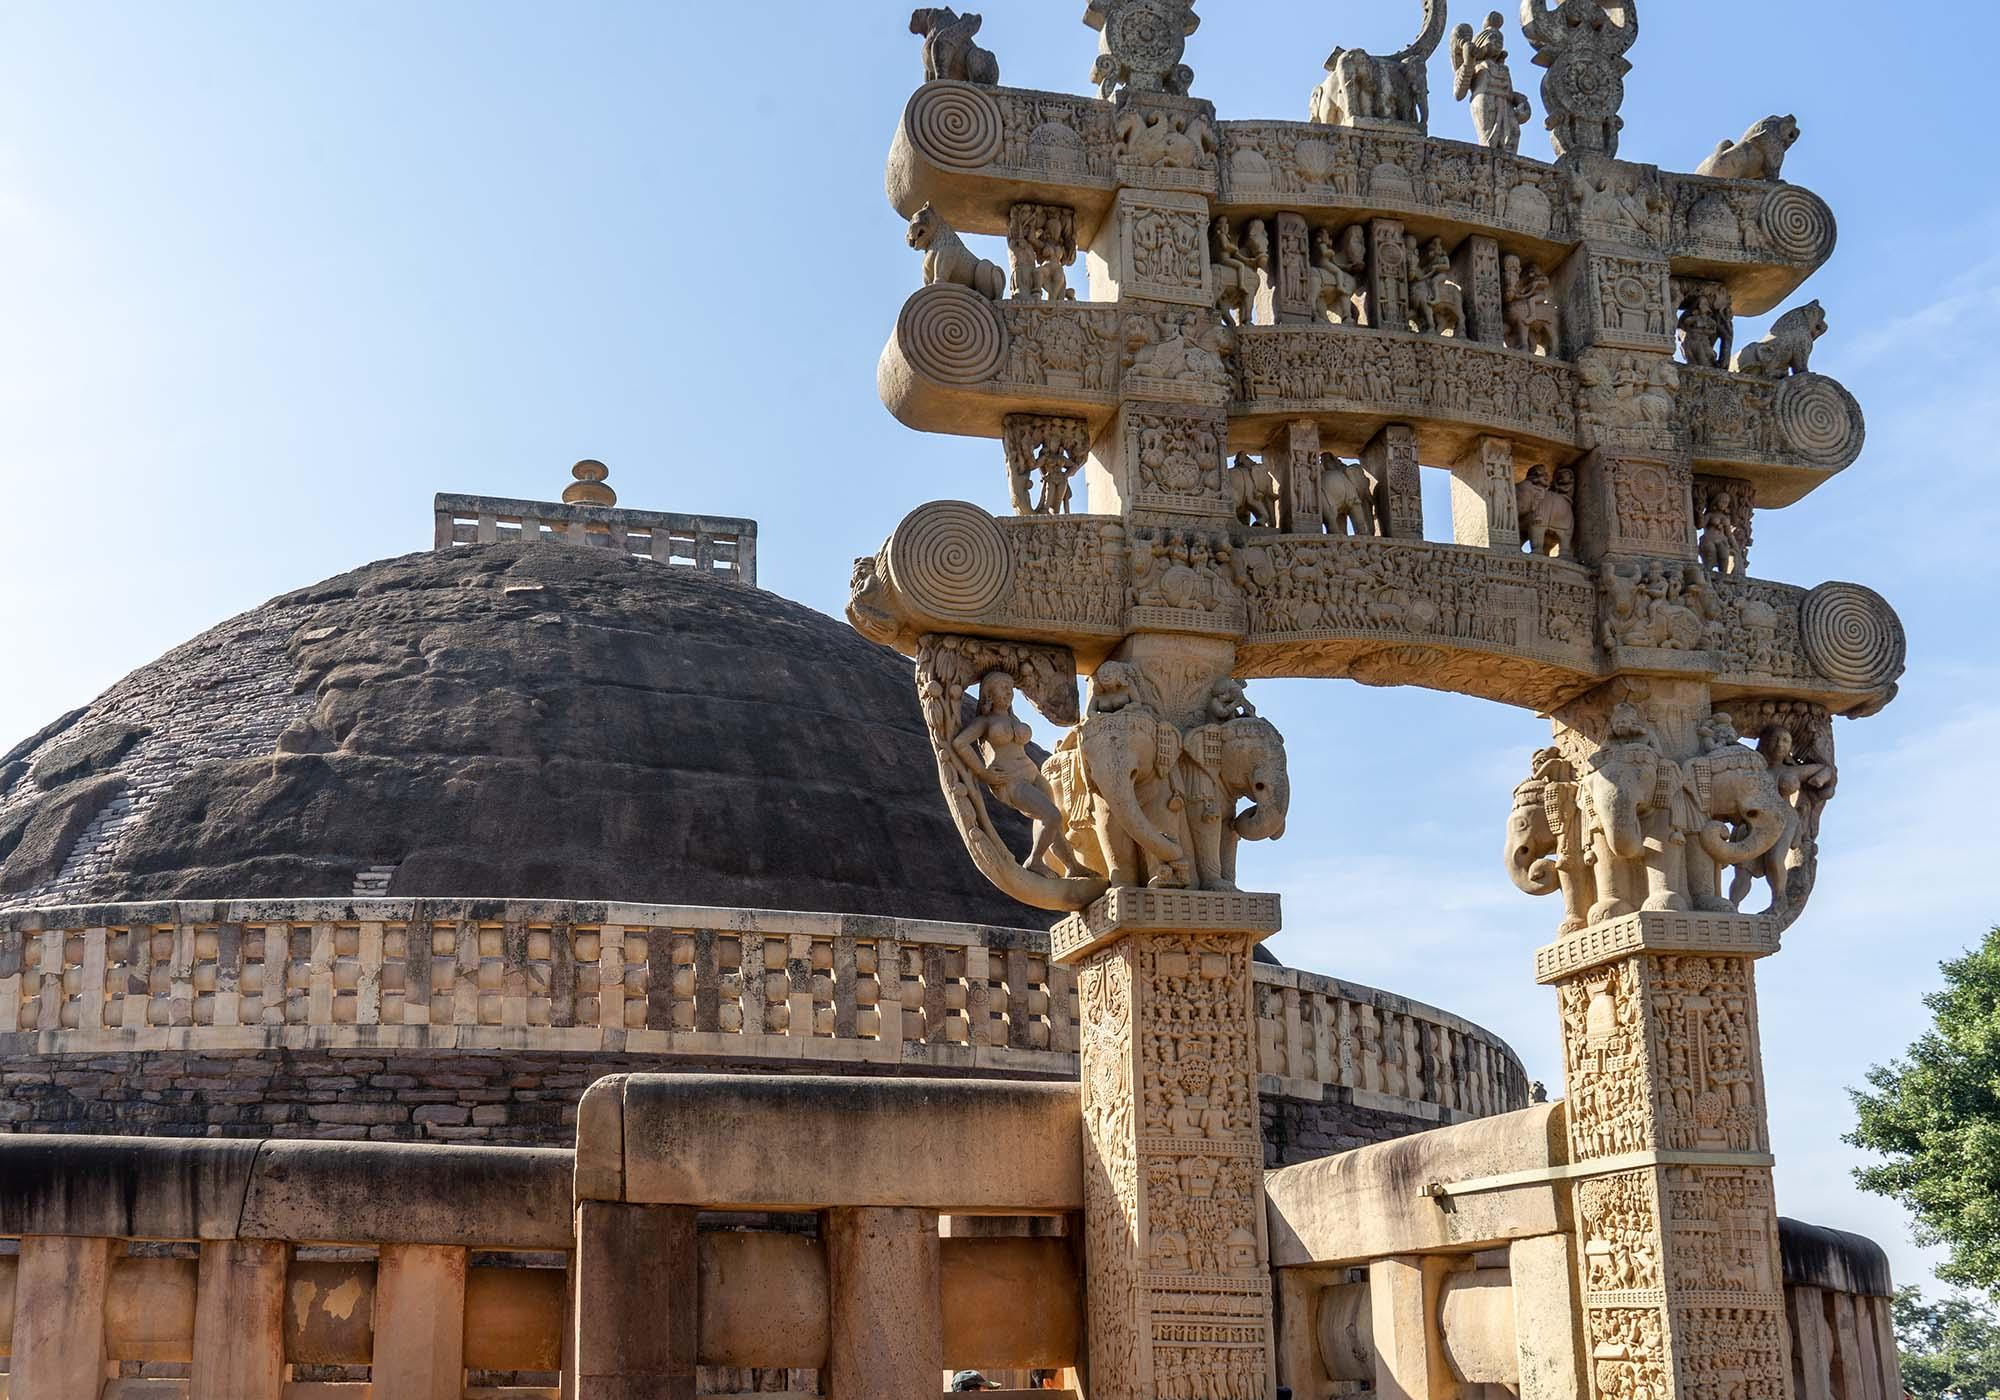 One of the four gateways that sit at the cardinal points around the Great Stupa of Sanchi and have the intricate carvings on the architraves. – © Michael Turtle